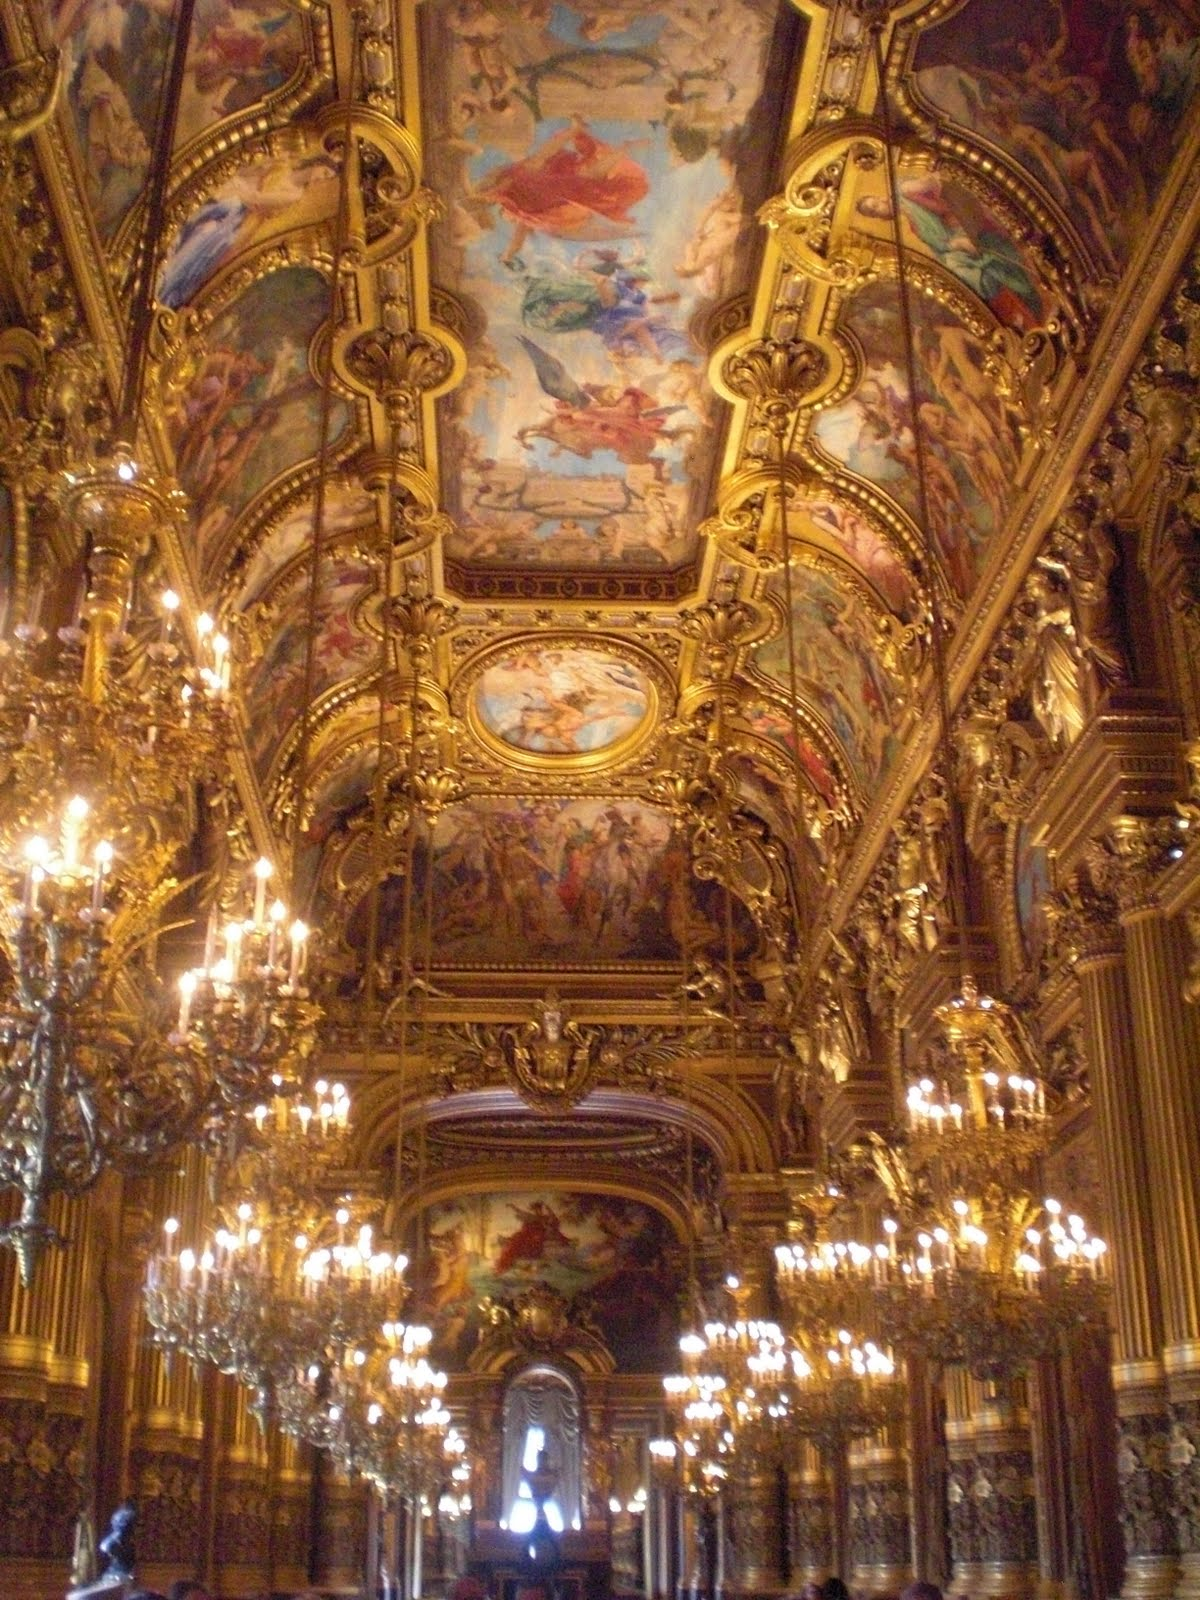 Room Sketching: -: Paris Opera House, And The Long Walk To The Grand Arch